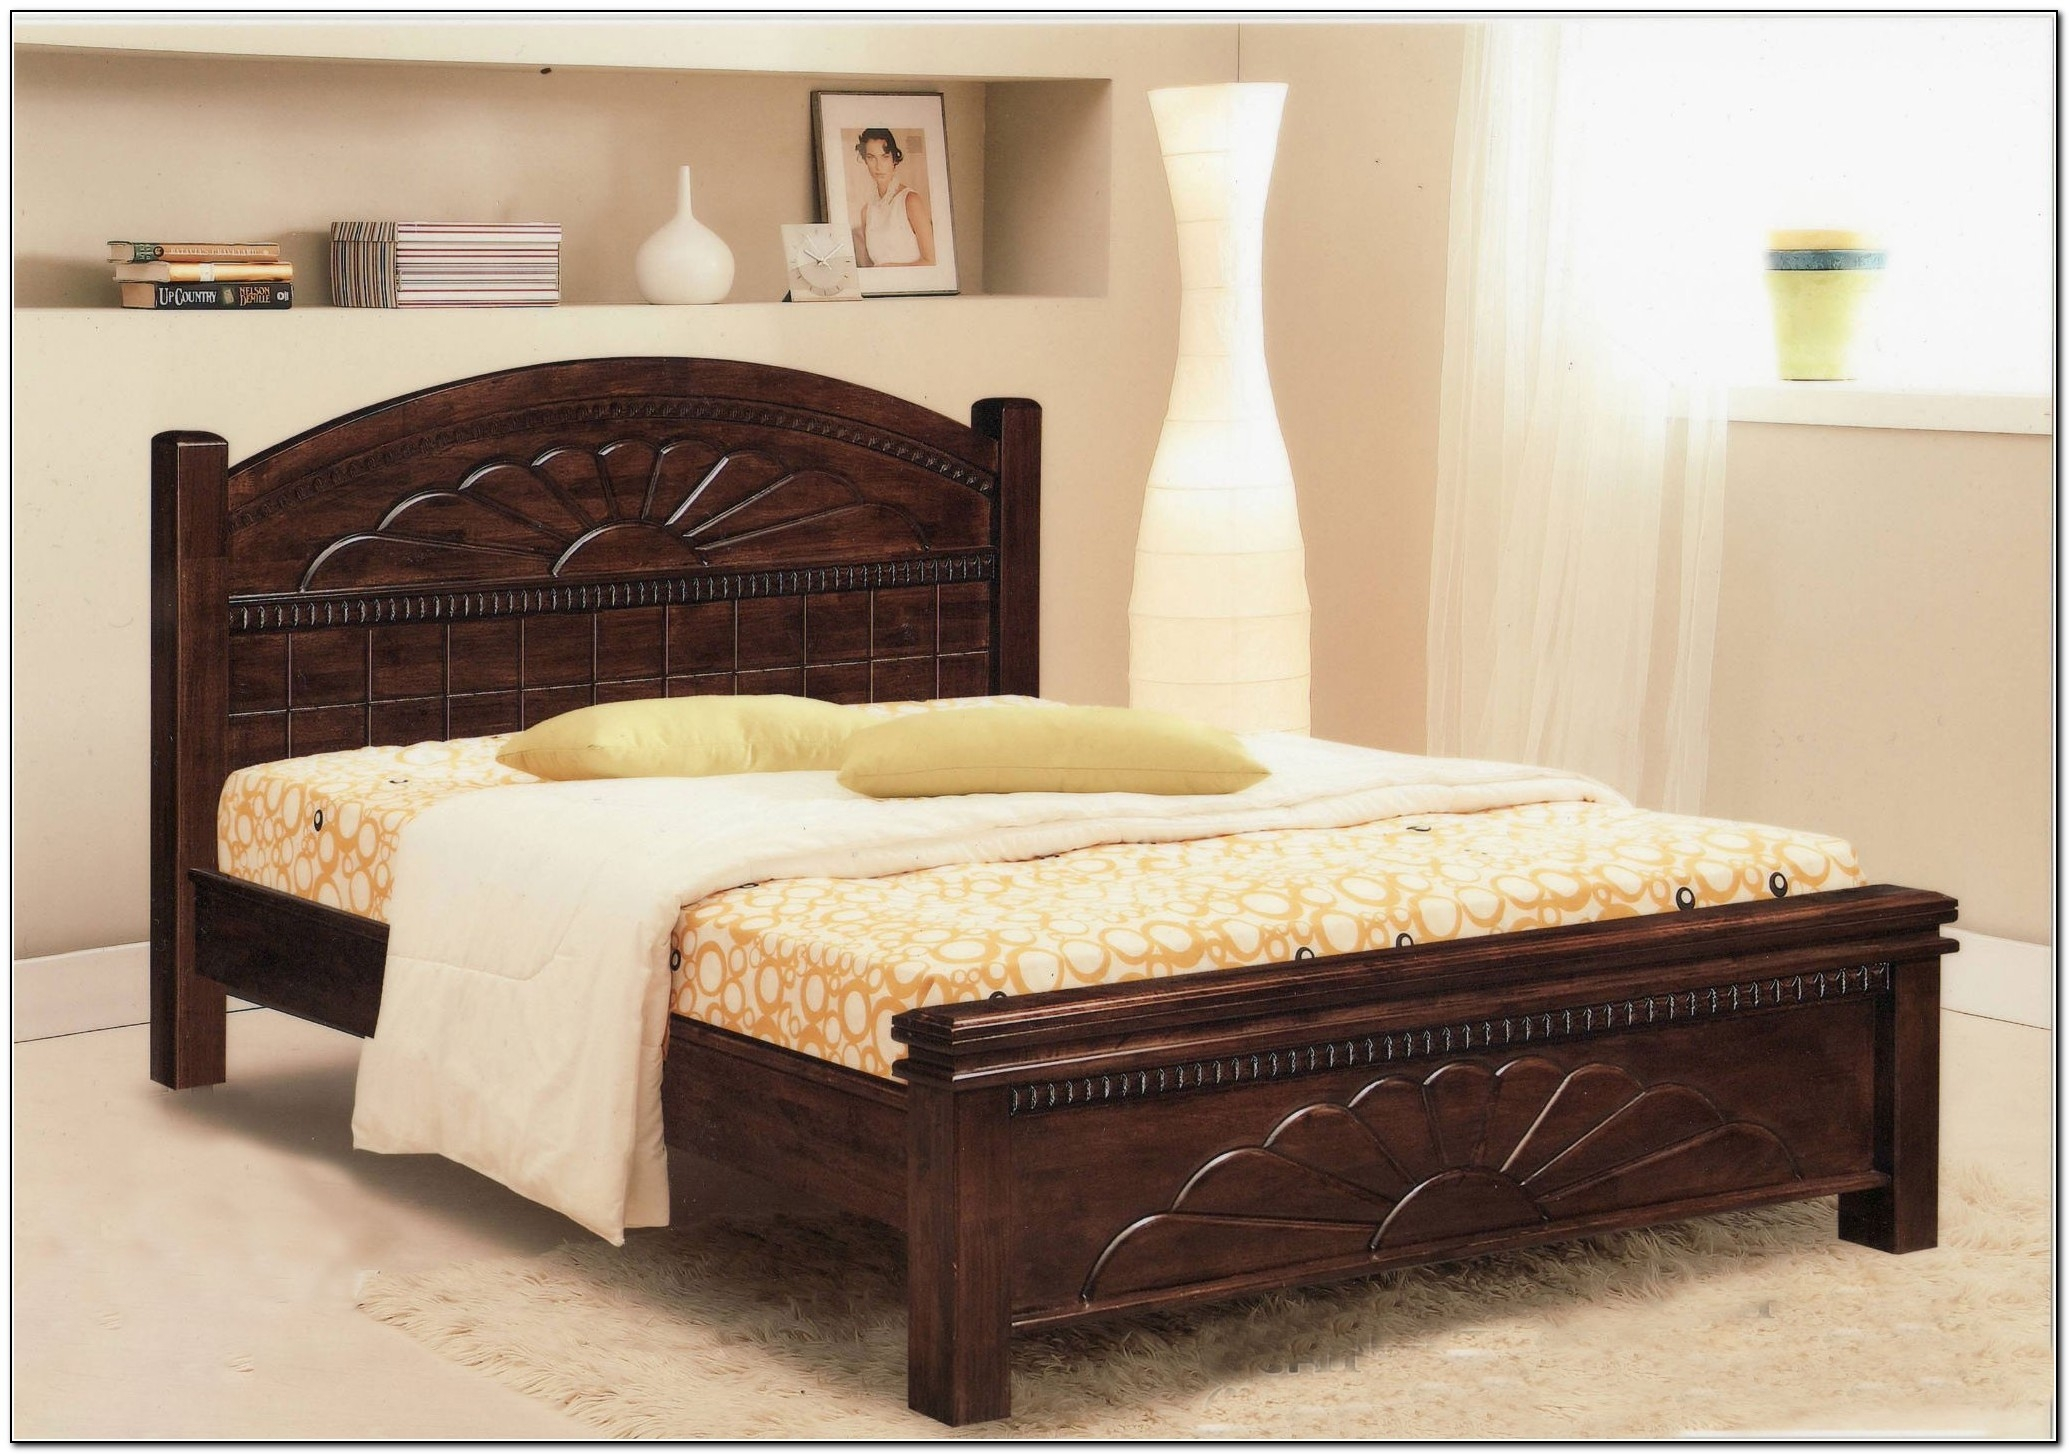 Permalink to Bed Frame Full Size Wood